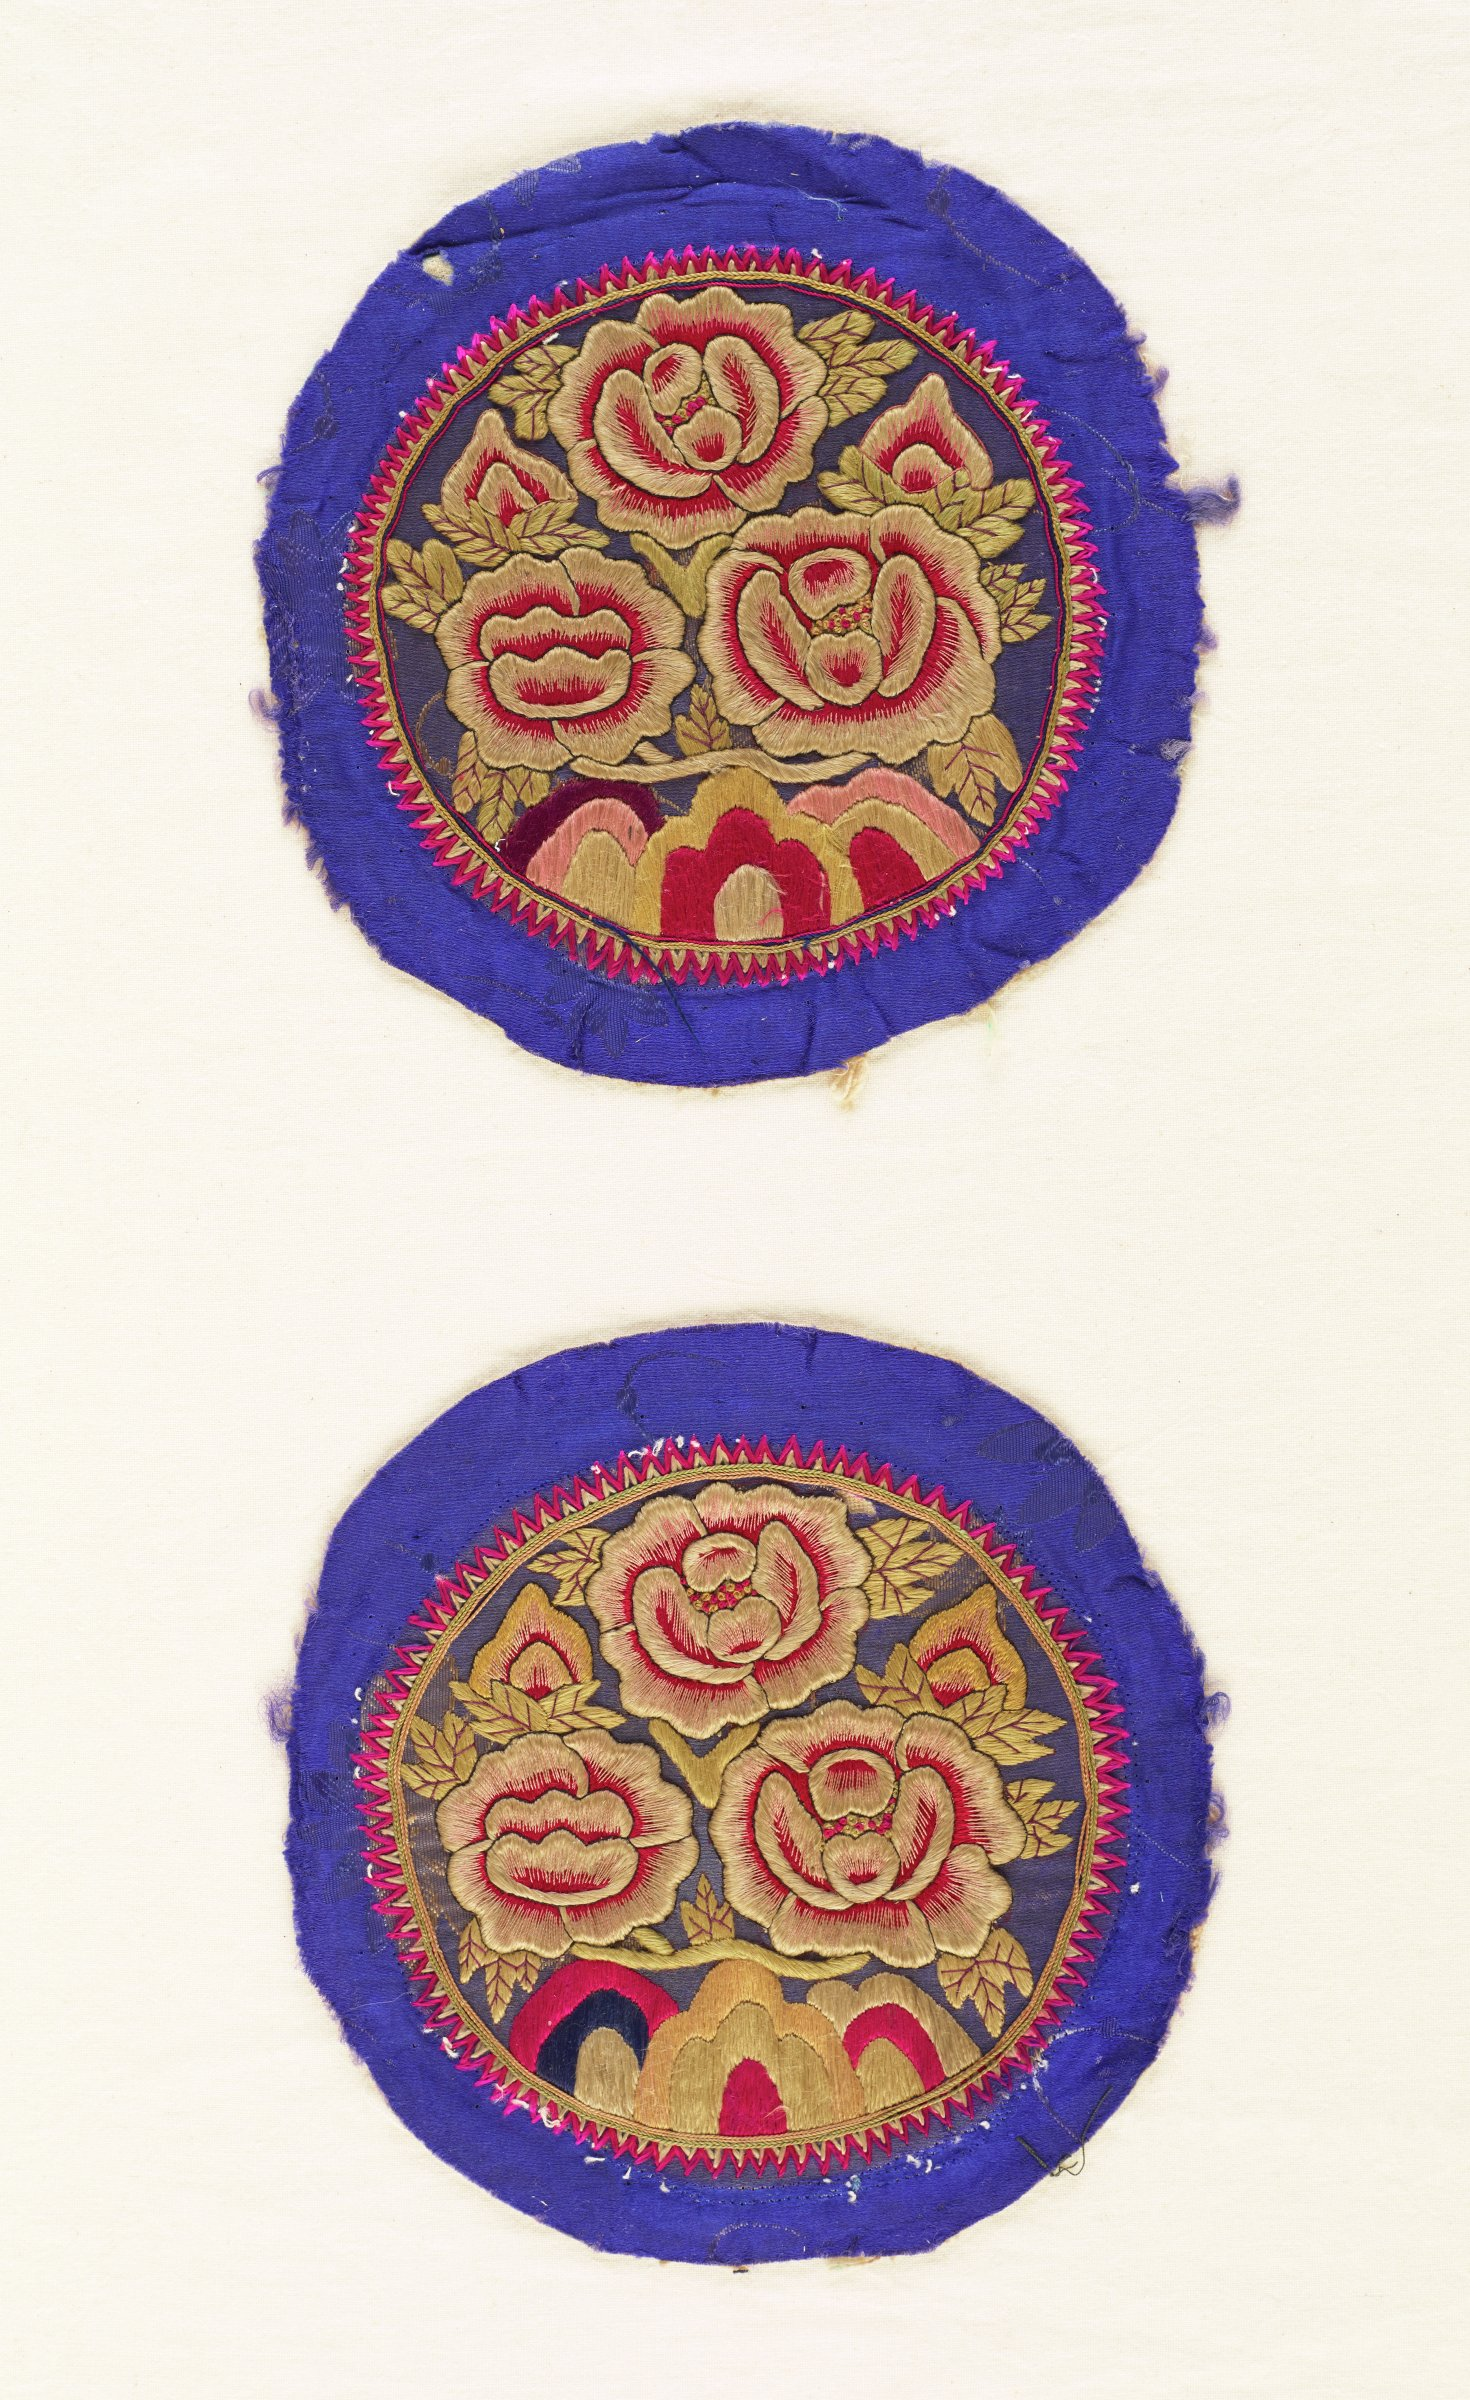 Pair of round pillow ends with embroidered floral designs on royal blue background